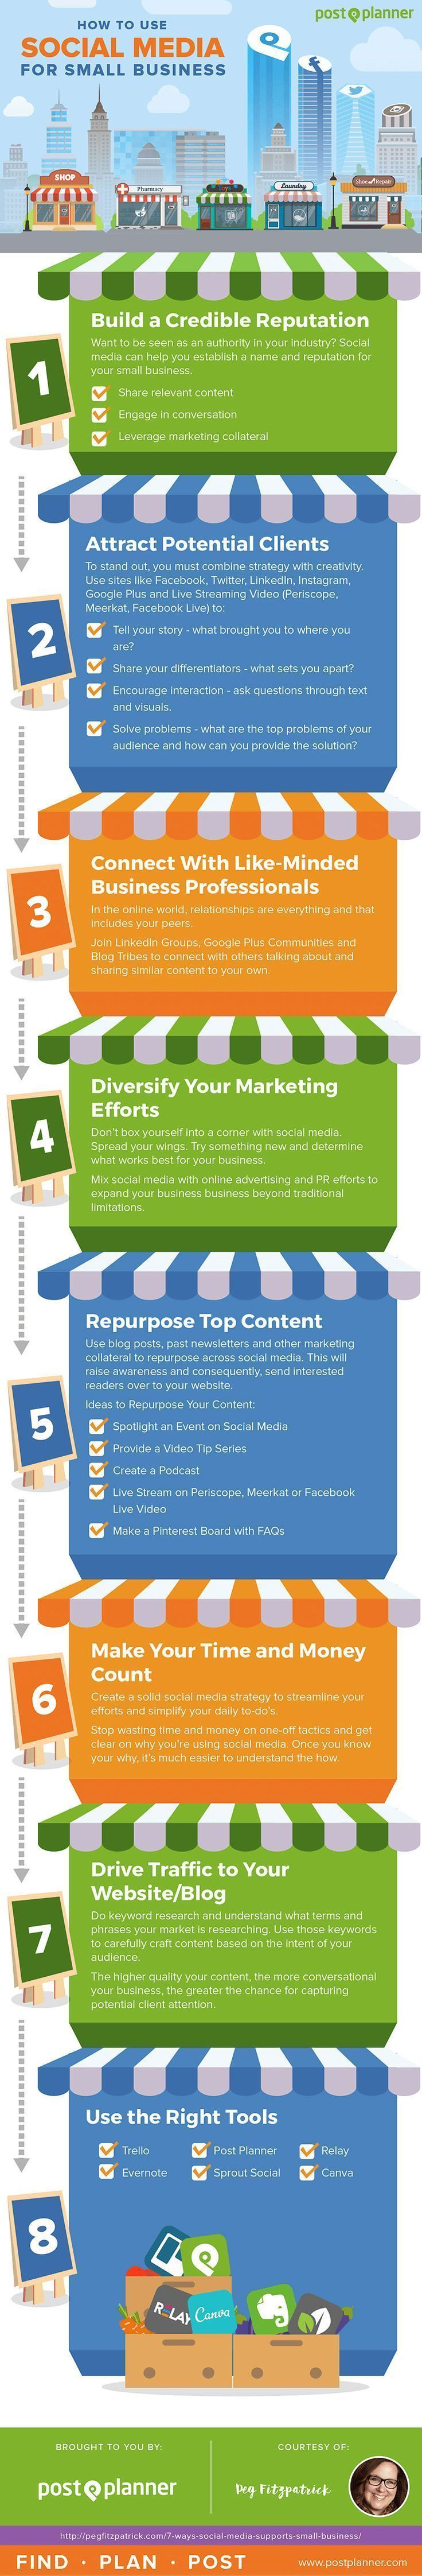 How to Use Social Media for Your Small Business [Infographic]